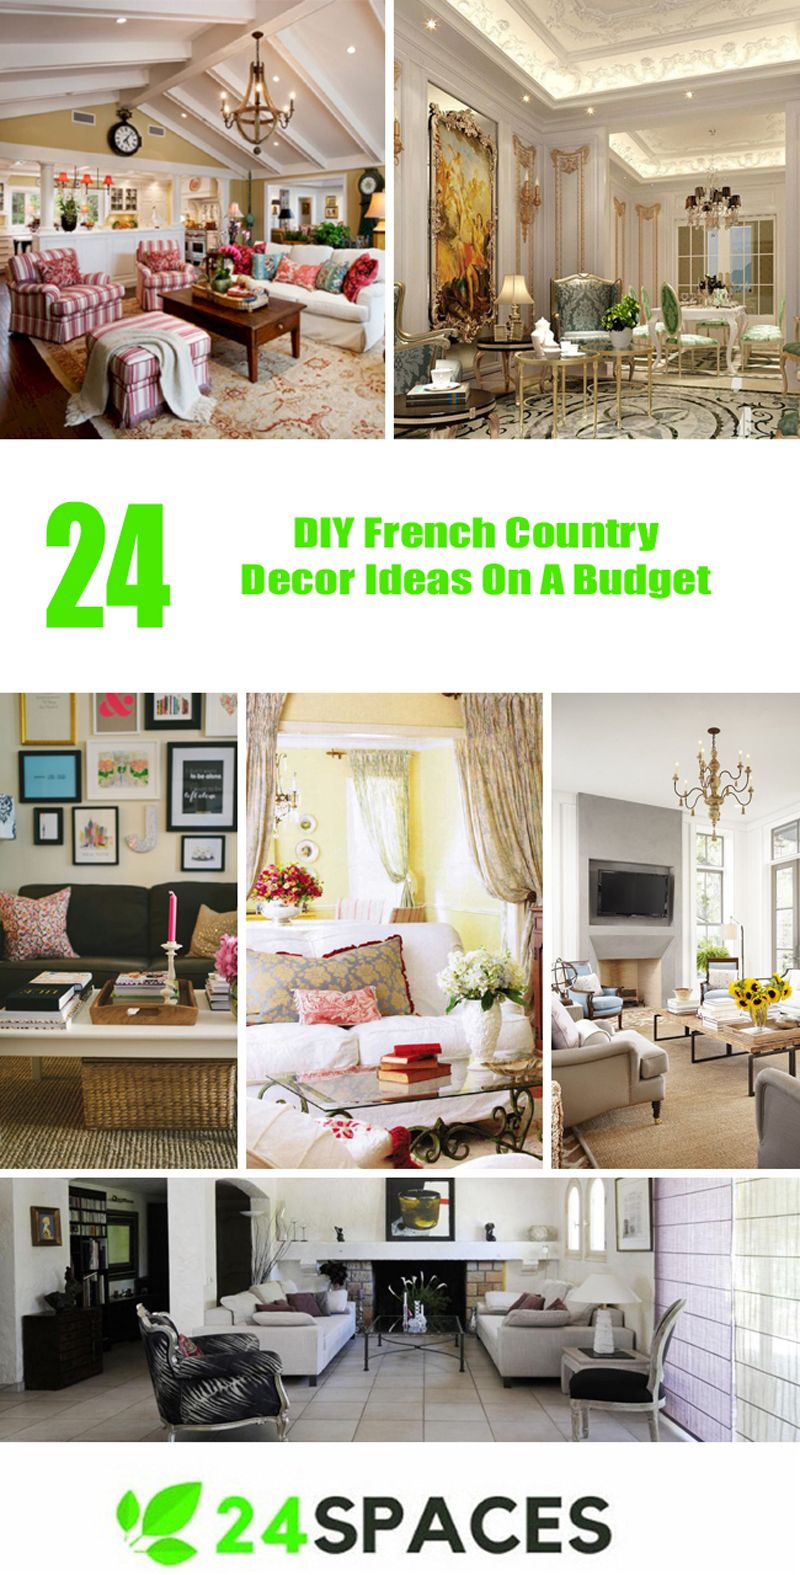 Top 24 Diy French Country Decor Ideas On A Budget Https 24es